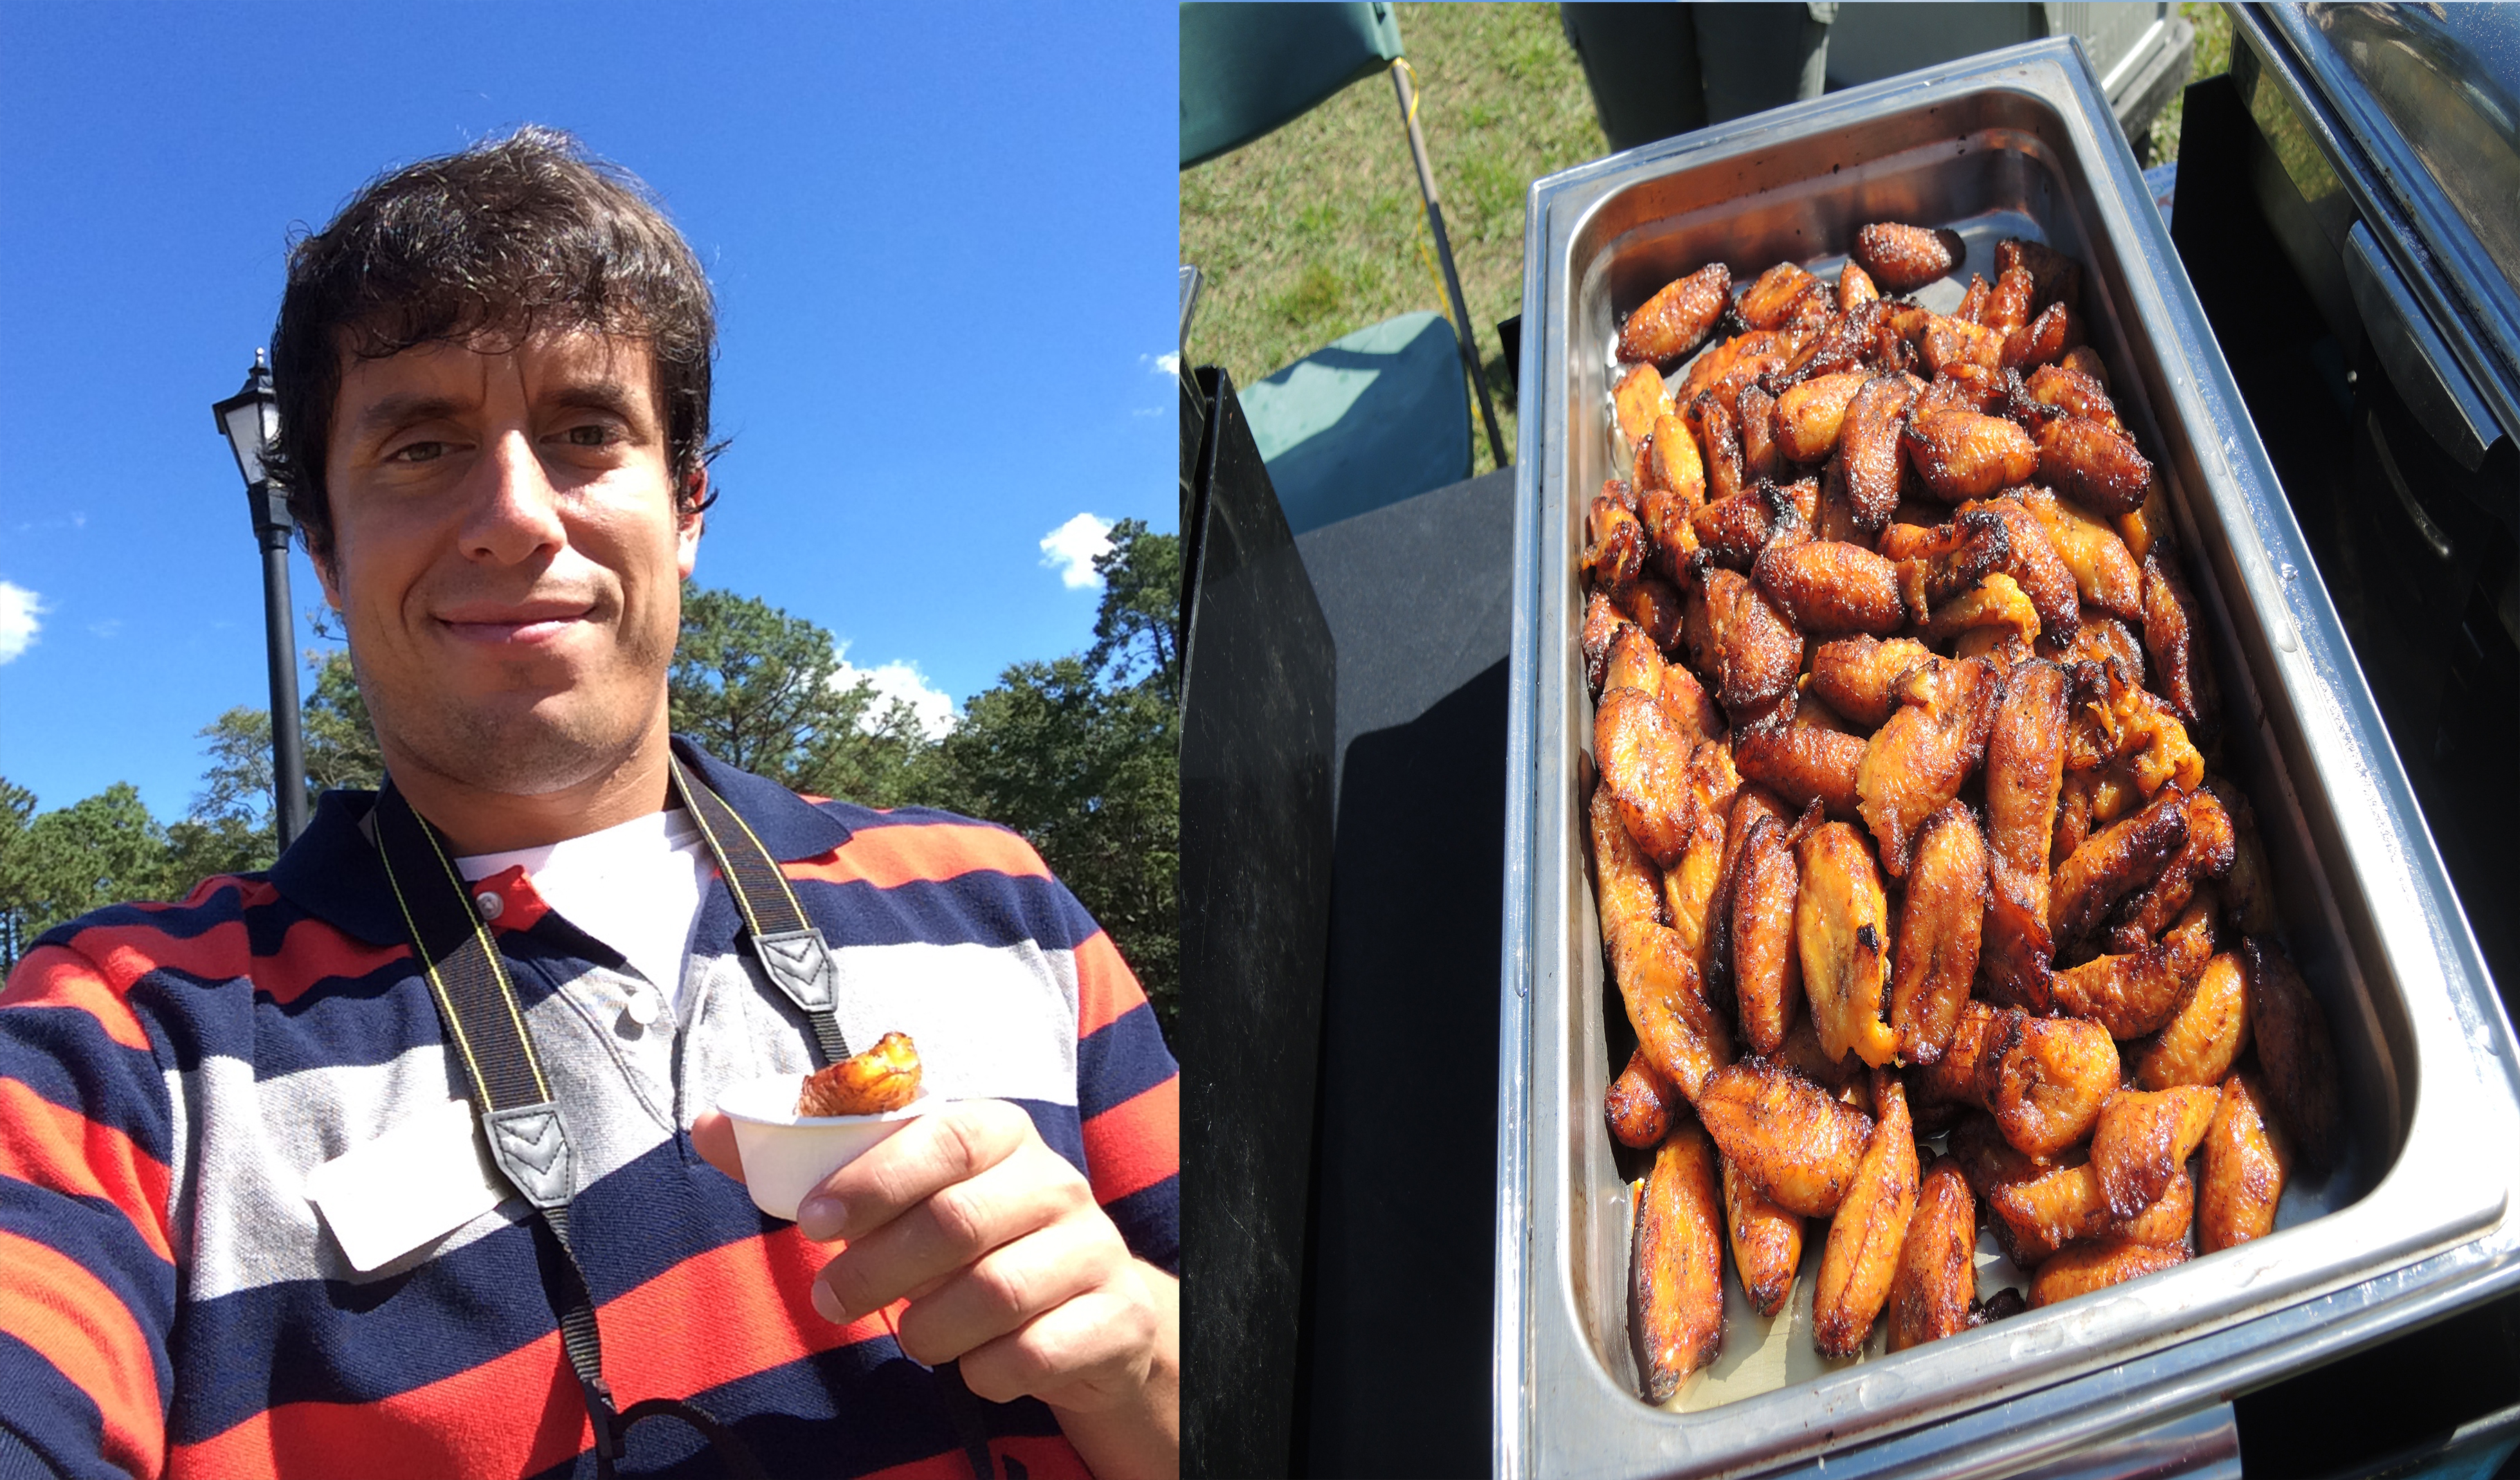 Me with a sweet plantain today and then on the right is the pan filled with the tasty treat.